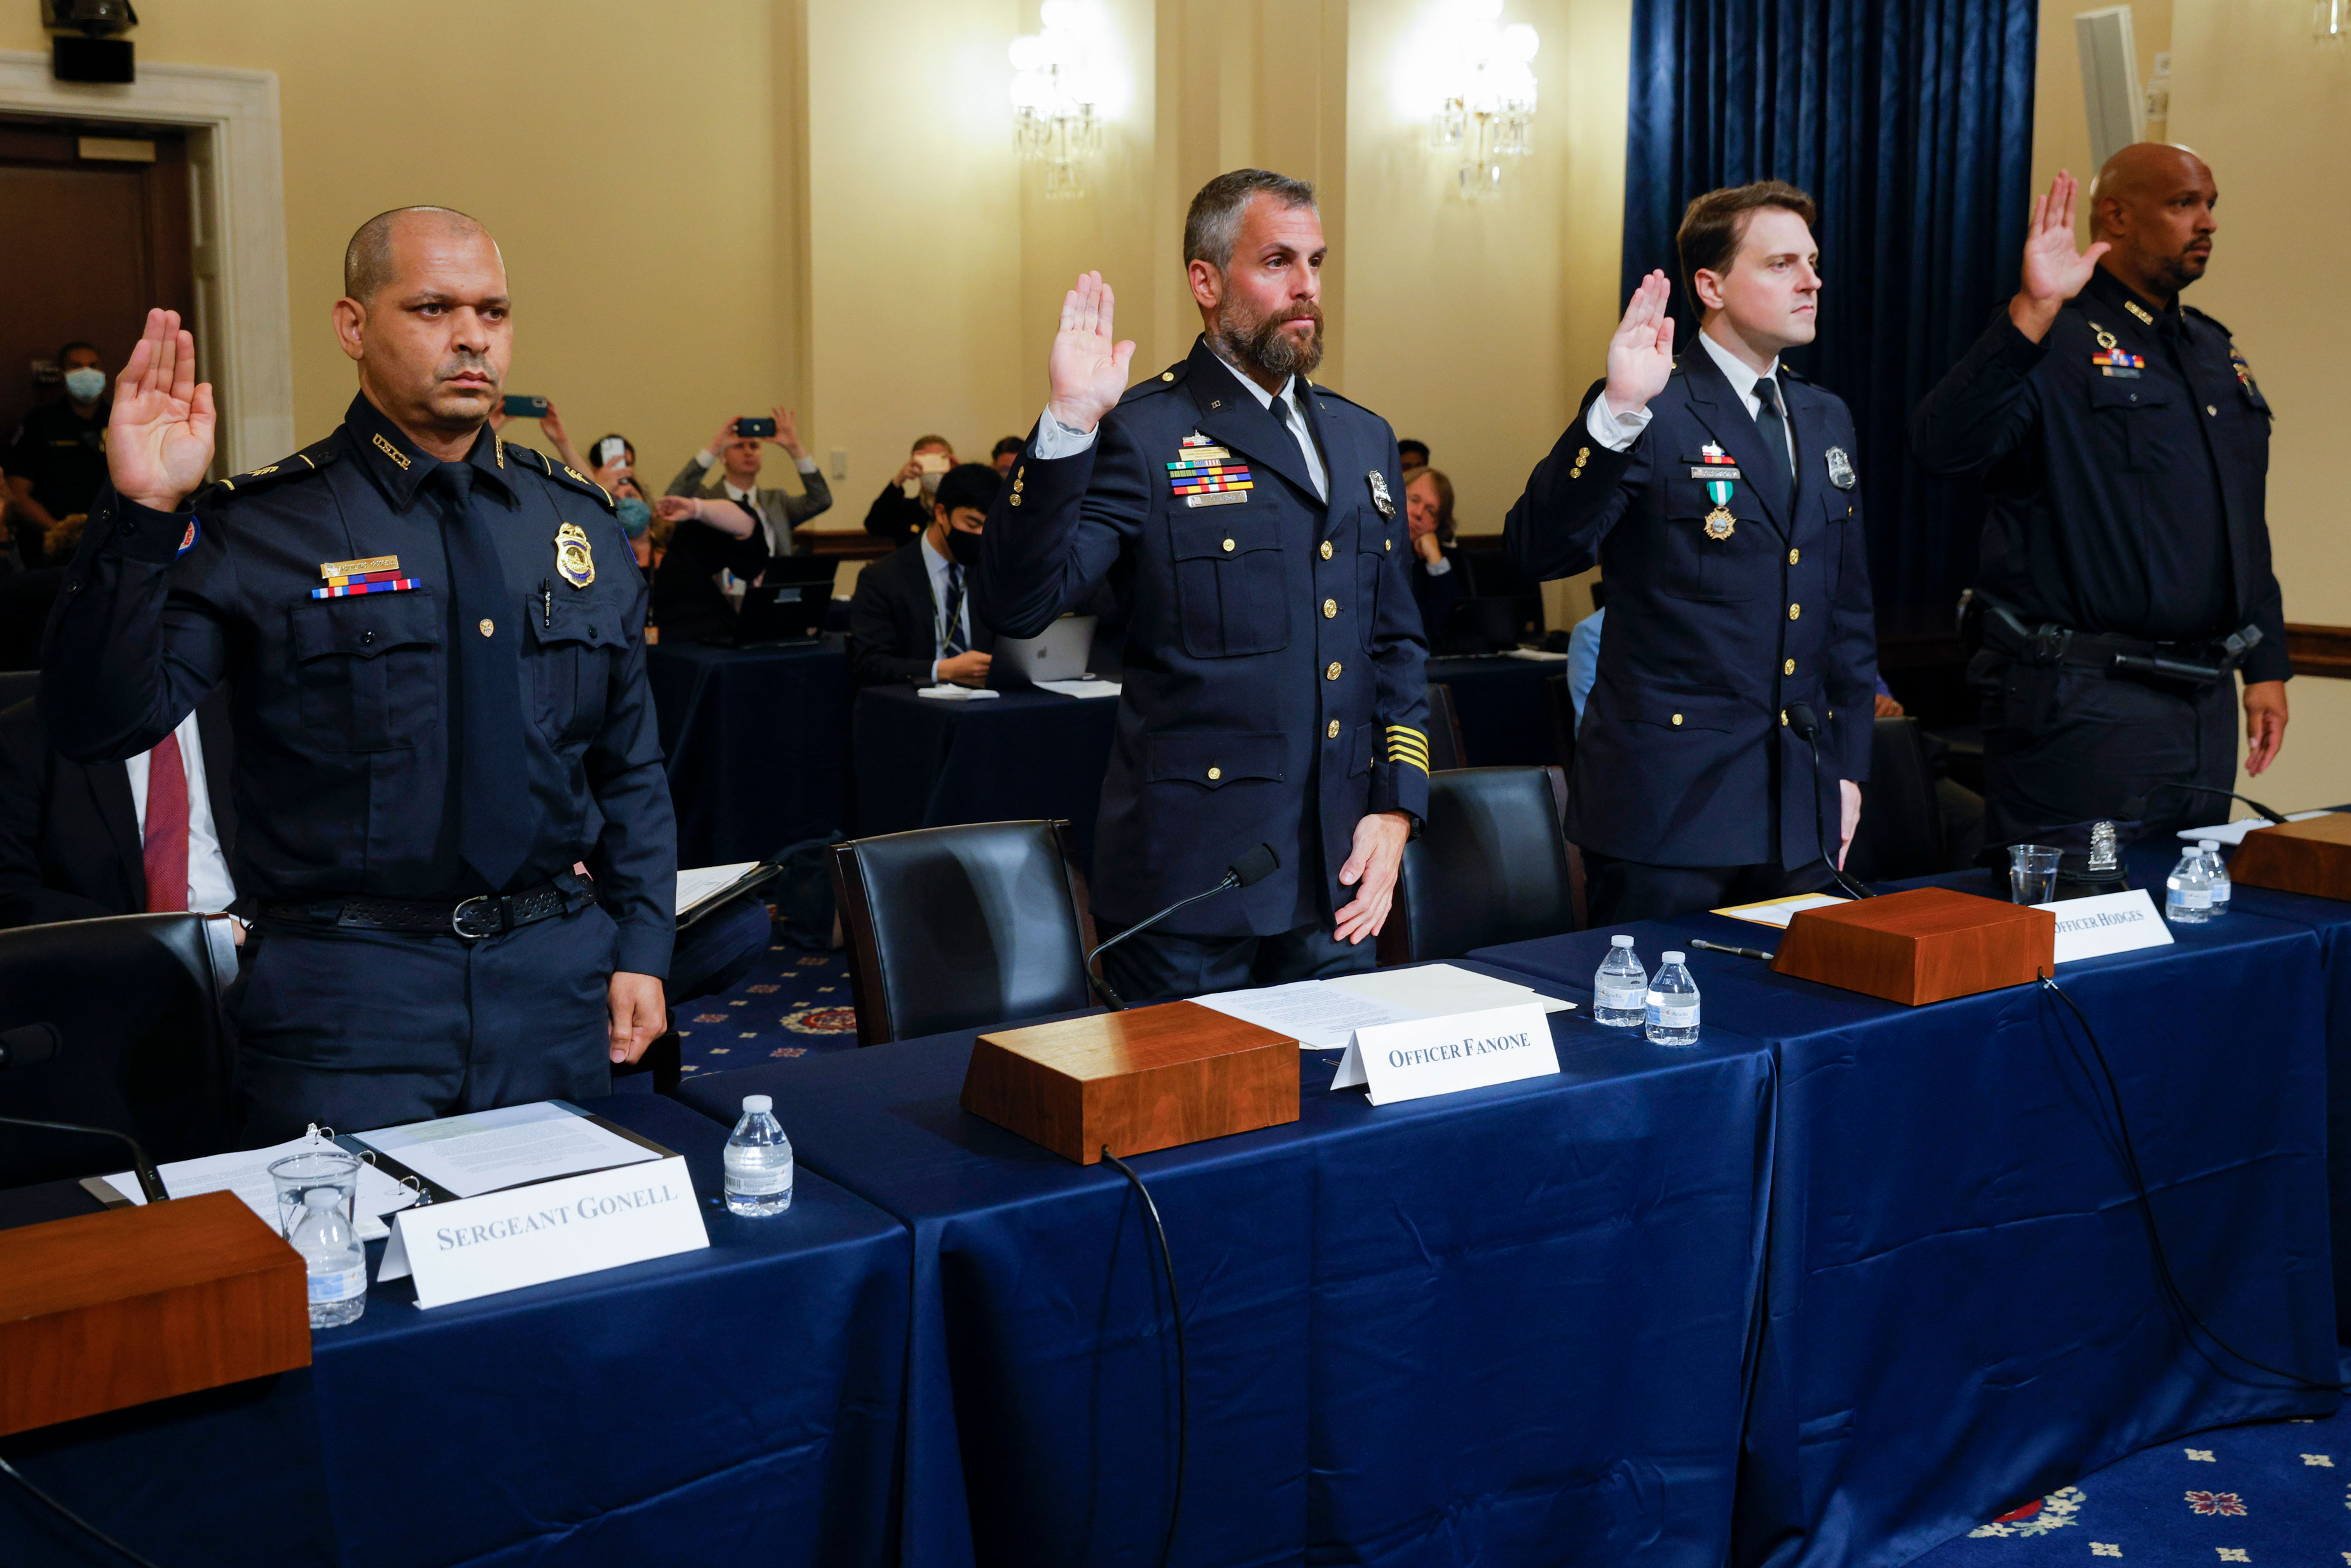 From left, US Capitol Police Sgt. Aquilino Gonell, DC police officer Michael Fanone, DC police officer Daniel Hodges, and US Capitol police officer Harry Dunn are sworn in to testify to the House select committee hearing on the January 6 attack on Capitol Hill on Tuesday, July 27.